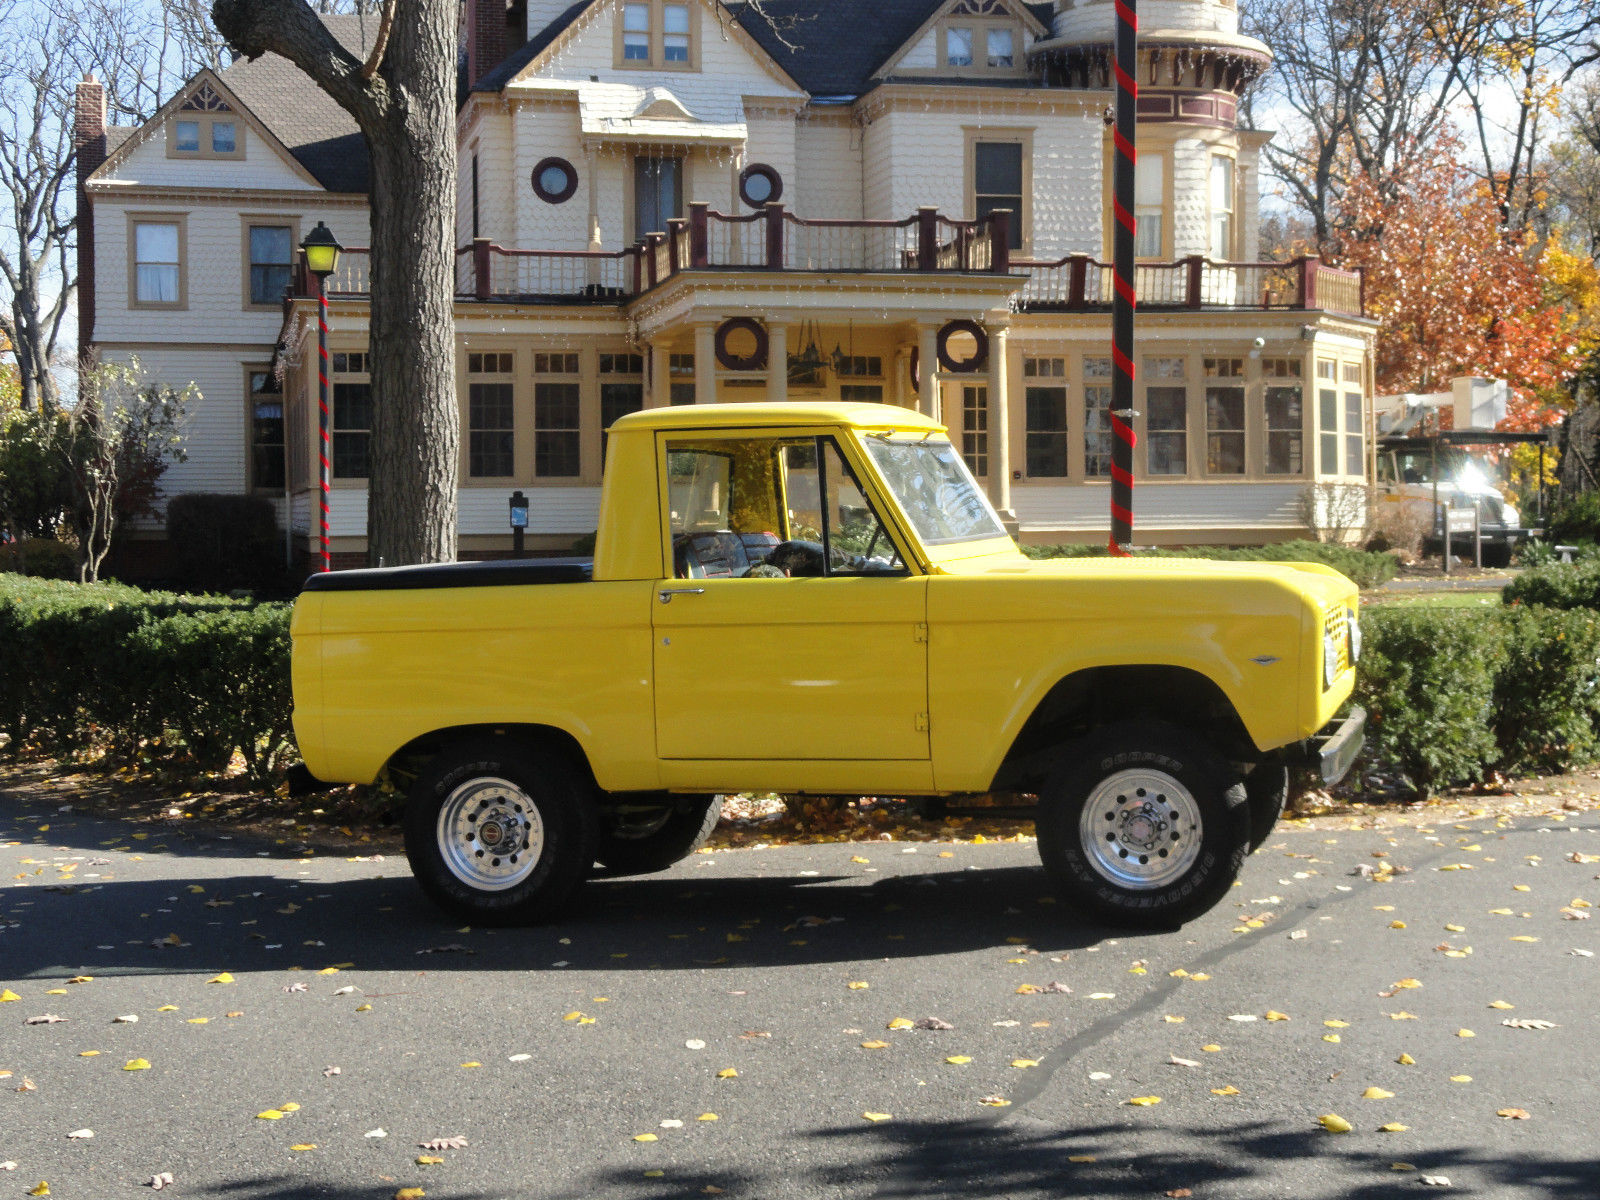 1968 ford bronco for sale photos technical specifications description. Black Bedroom Furniture Sets. Home Design Ideas